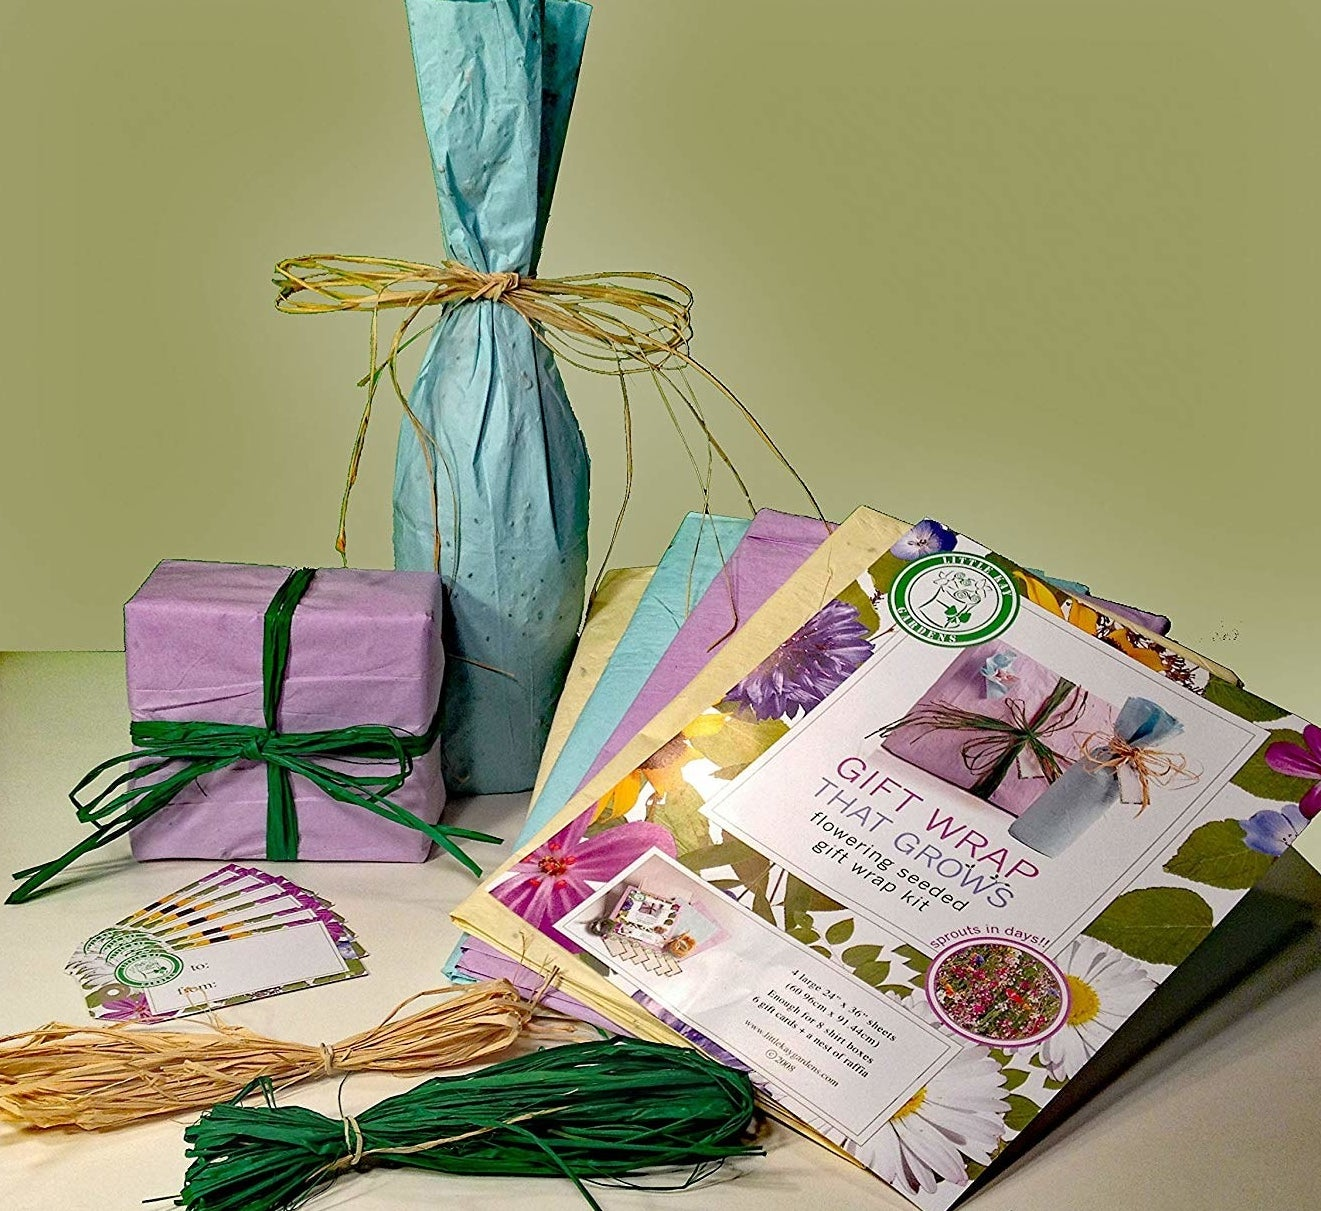 The gift wrap set with sheets in purple, yellow, and green as well as raffia in yellow and green